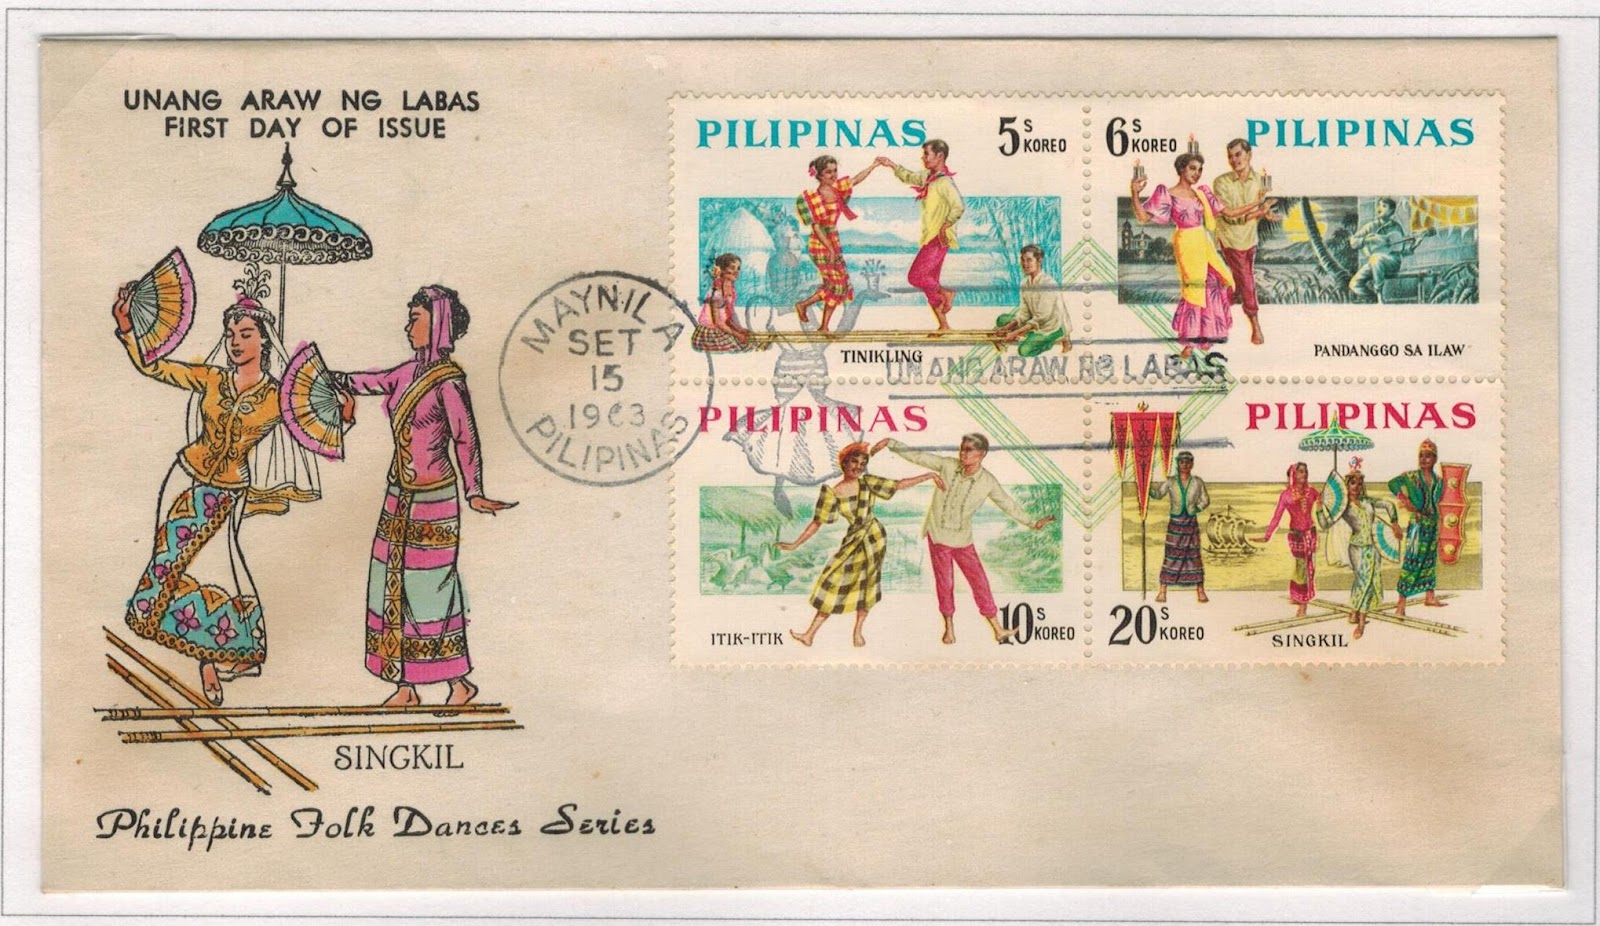 philippine folk dances Check out philippine folk dance - the tinikling - international dance day class at ballet austin in austin on april 29, 2018 and get detailed info for the event - tickets, photos, video and reviews.